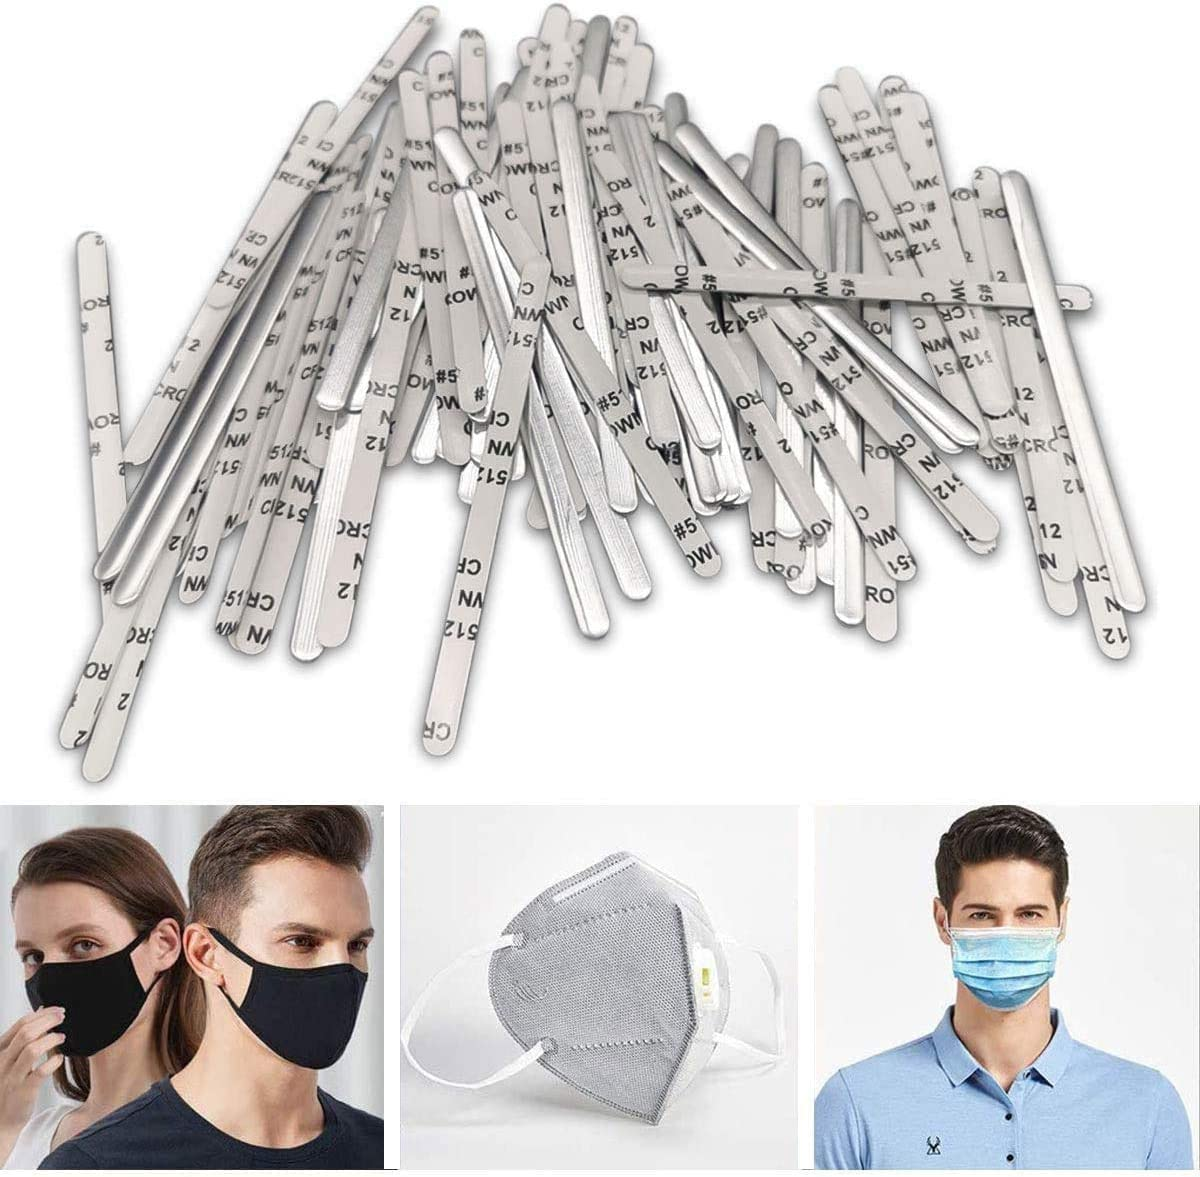 Nose Bridge Strips for Mask Nose Clips Mask Wire DIY Making Accessories for Sewing Crafts Metal Nose Strip for Masks 100pcs Sewing Accessories DIY Masks Nose Bridge for Mask